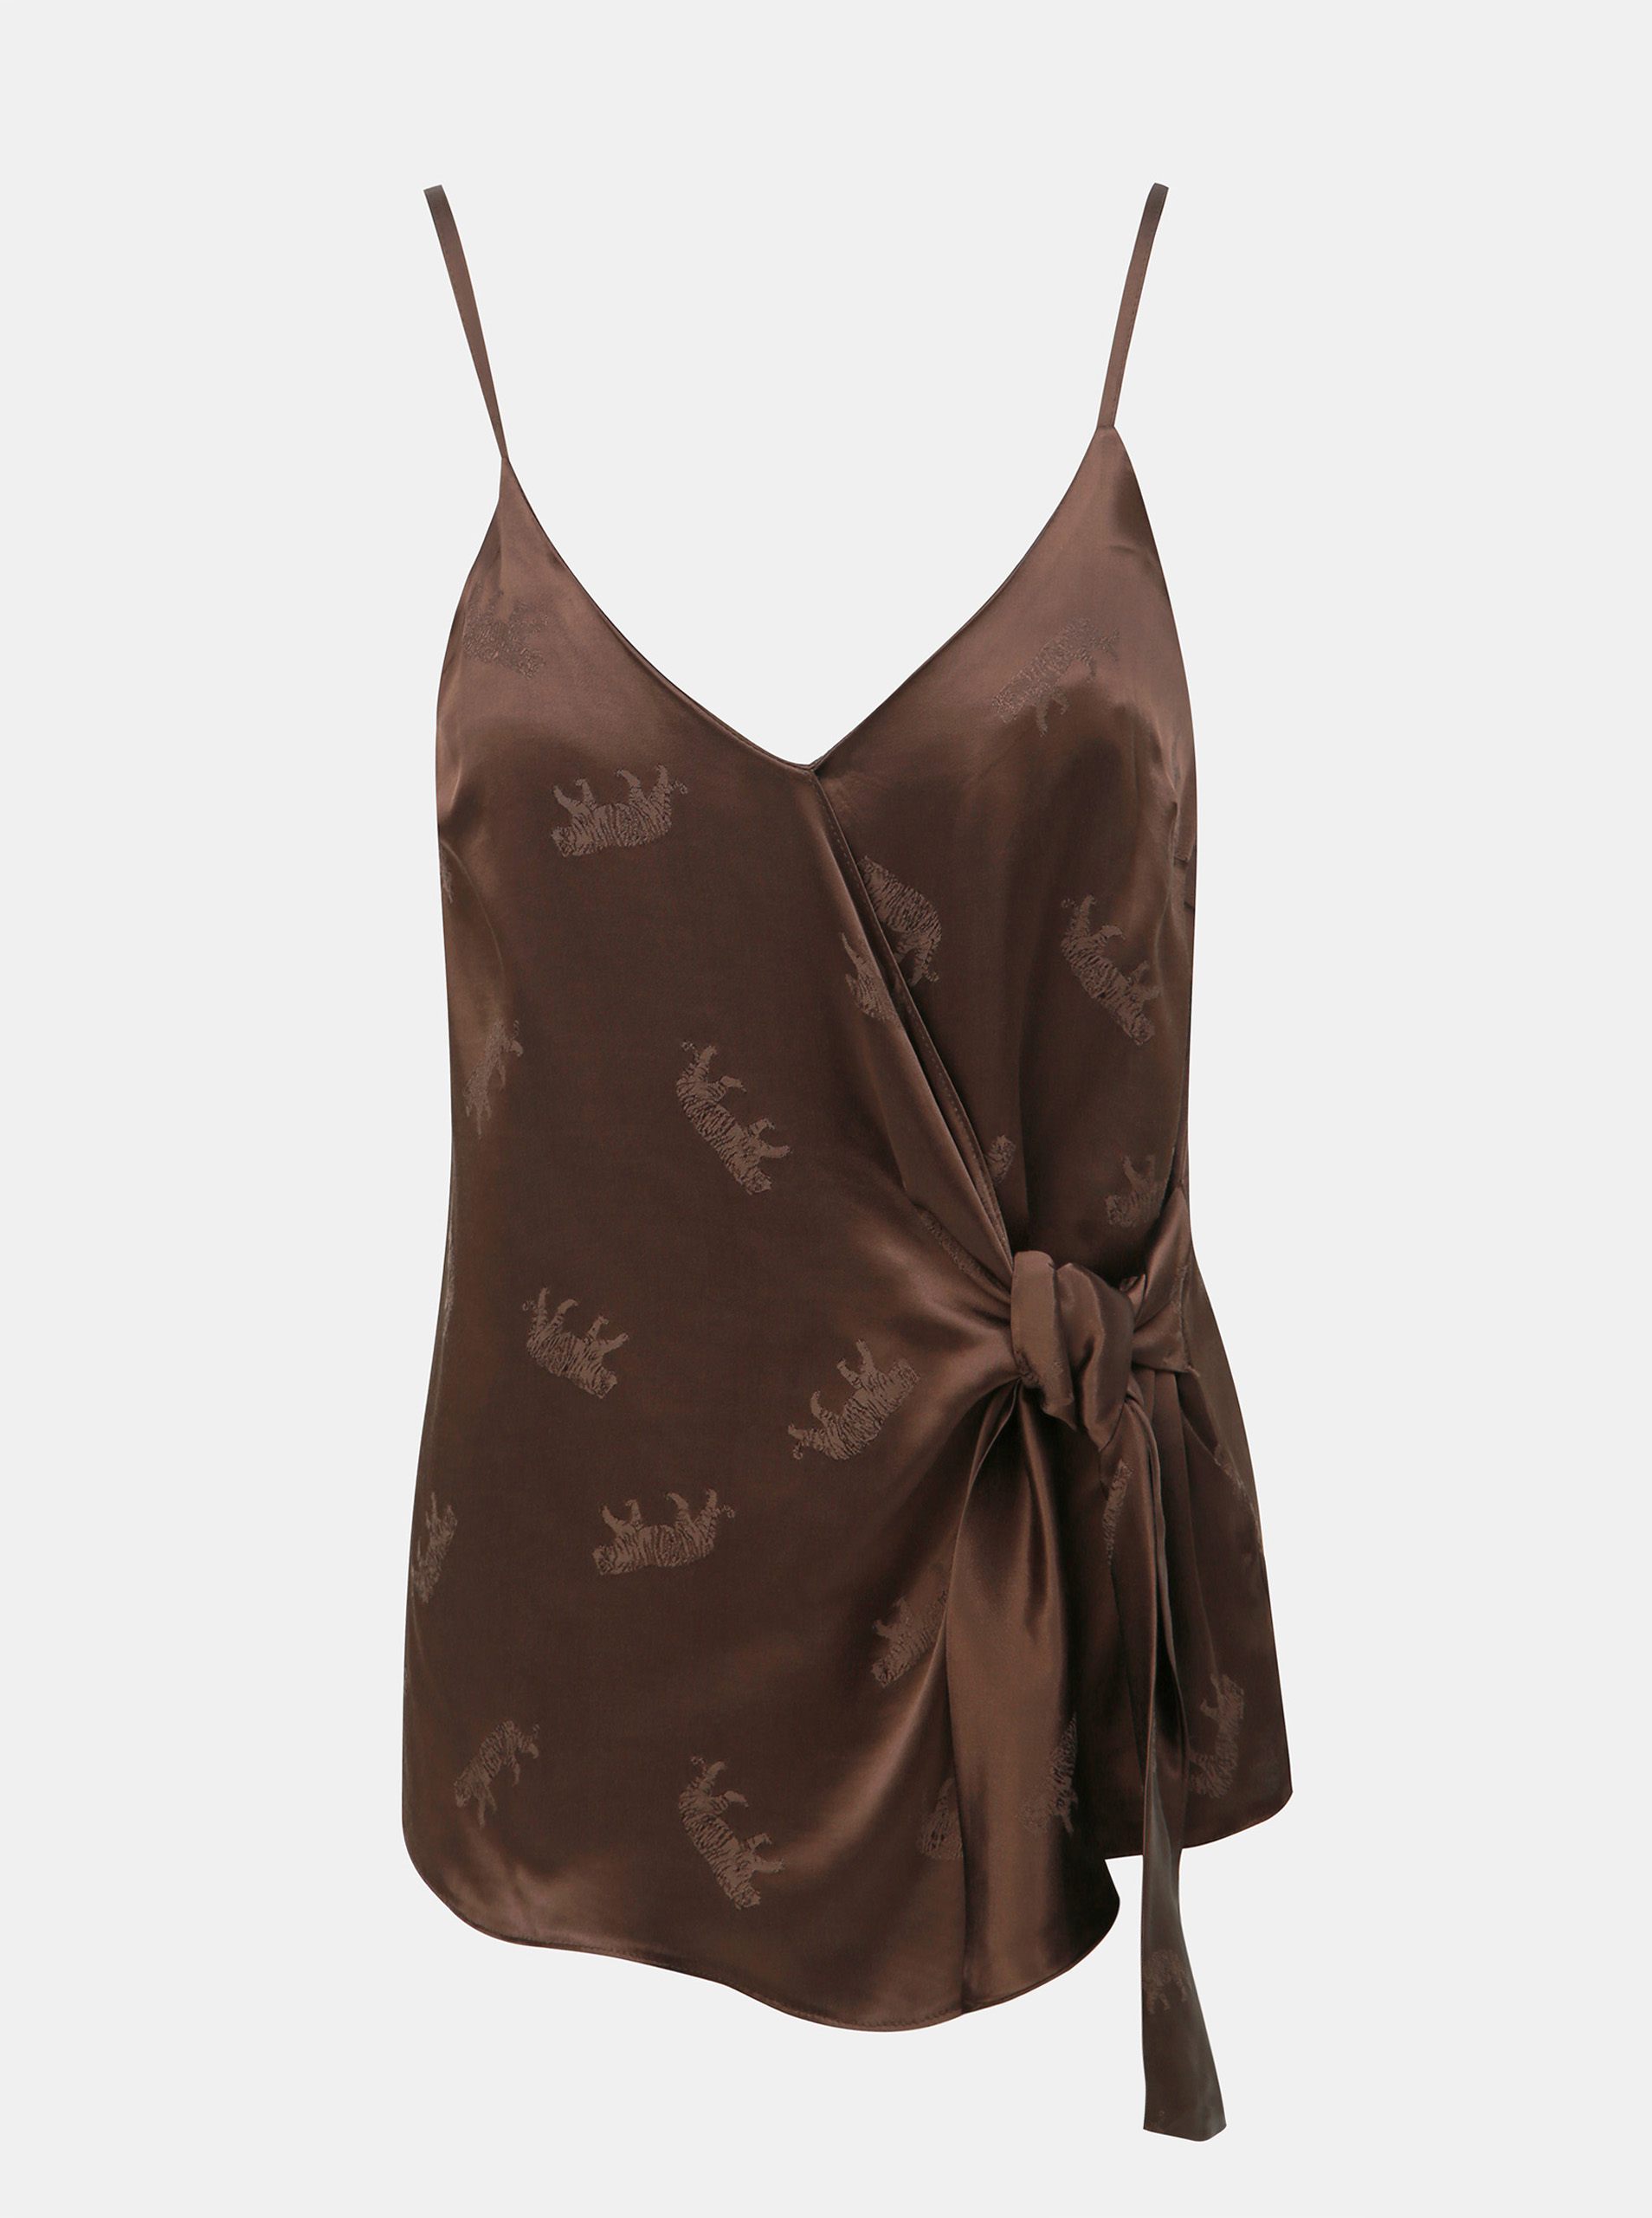 Brown patterned top with Dorothy Perkins binding